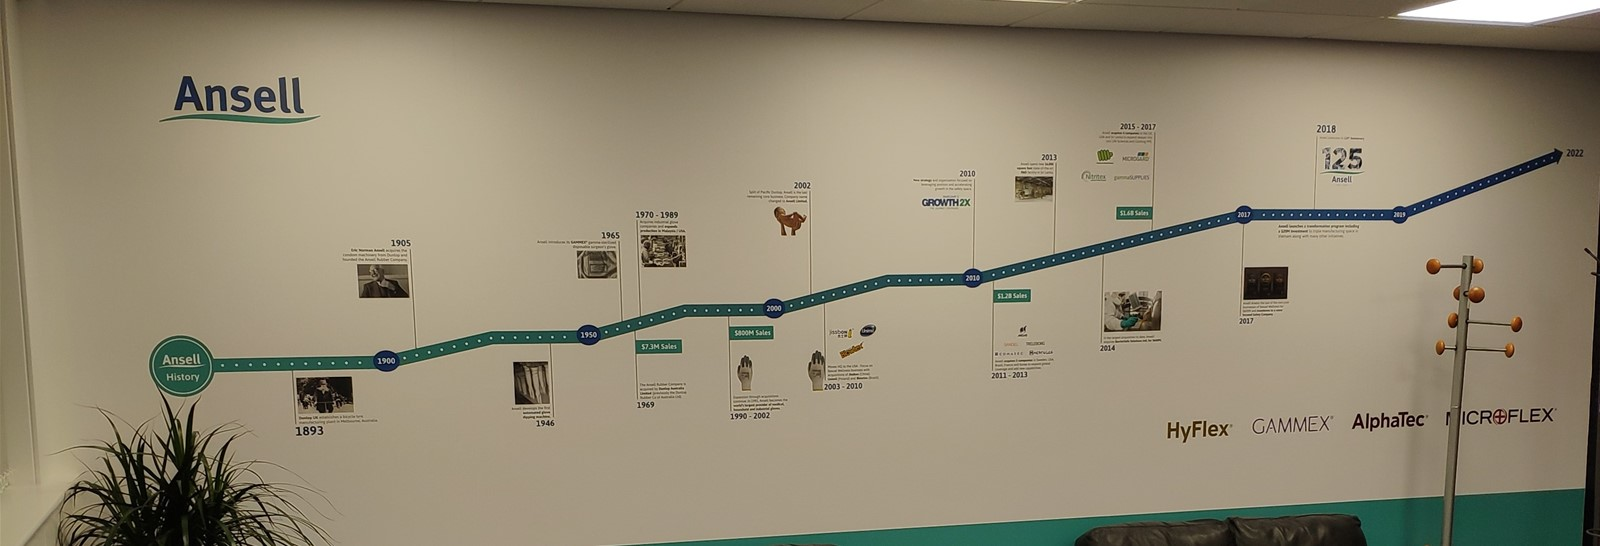 Ansell UK company timeline wall graphic